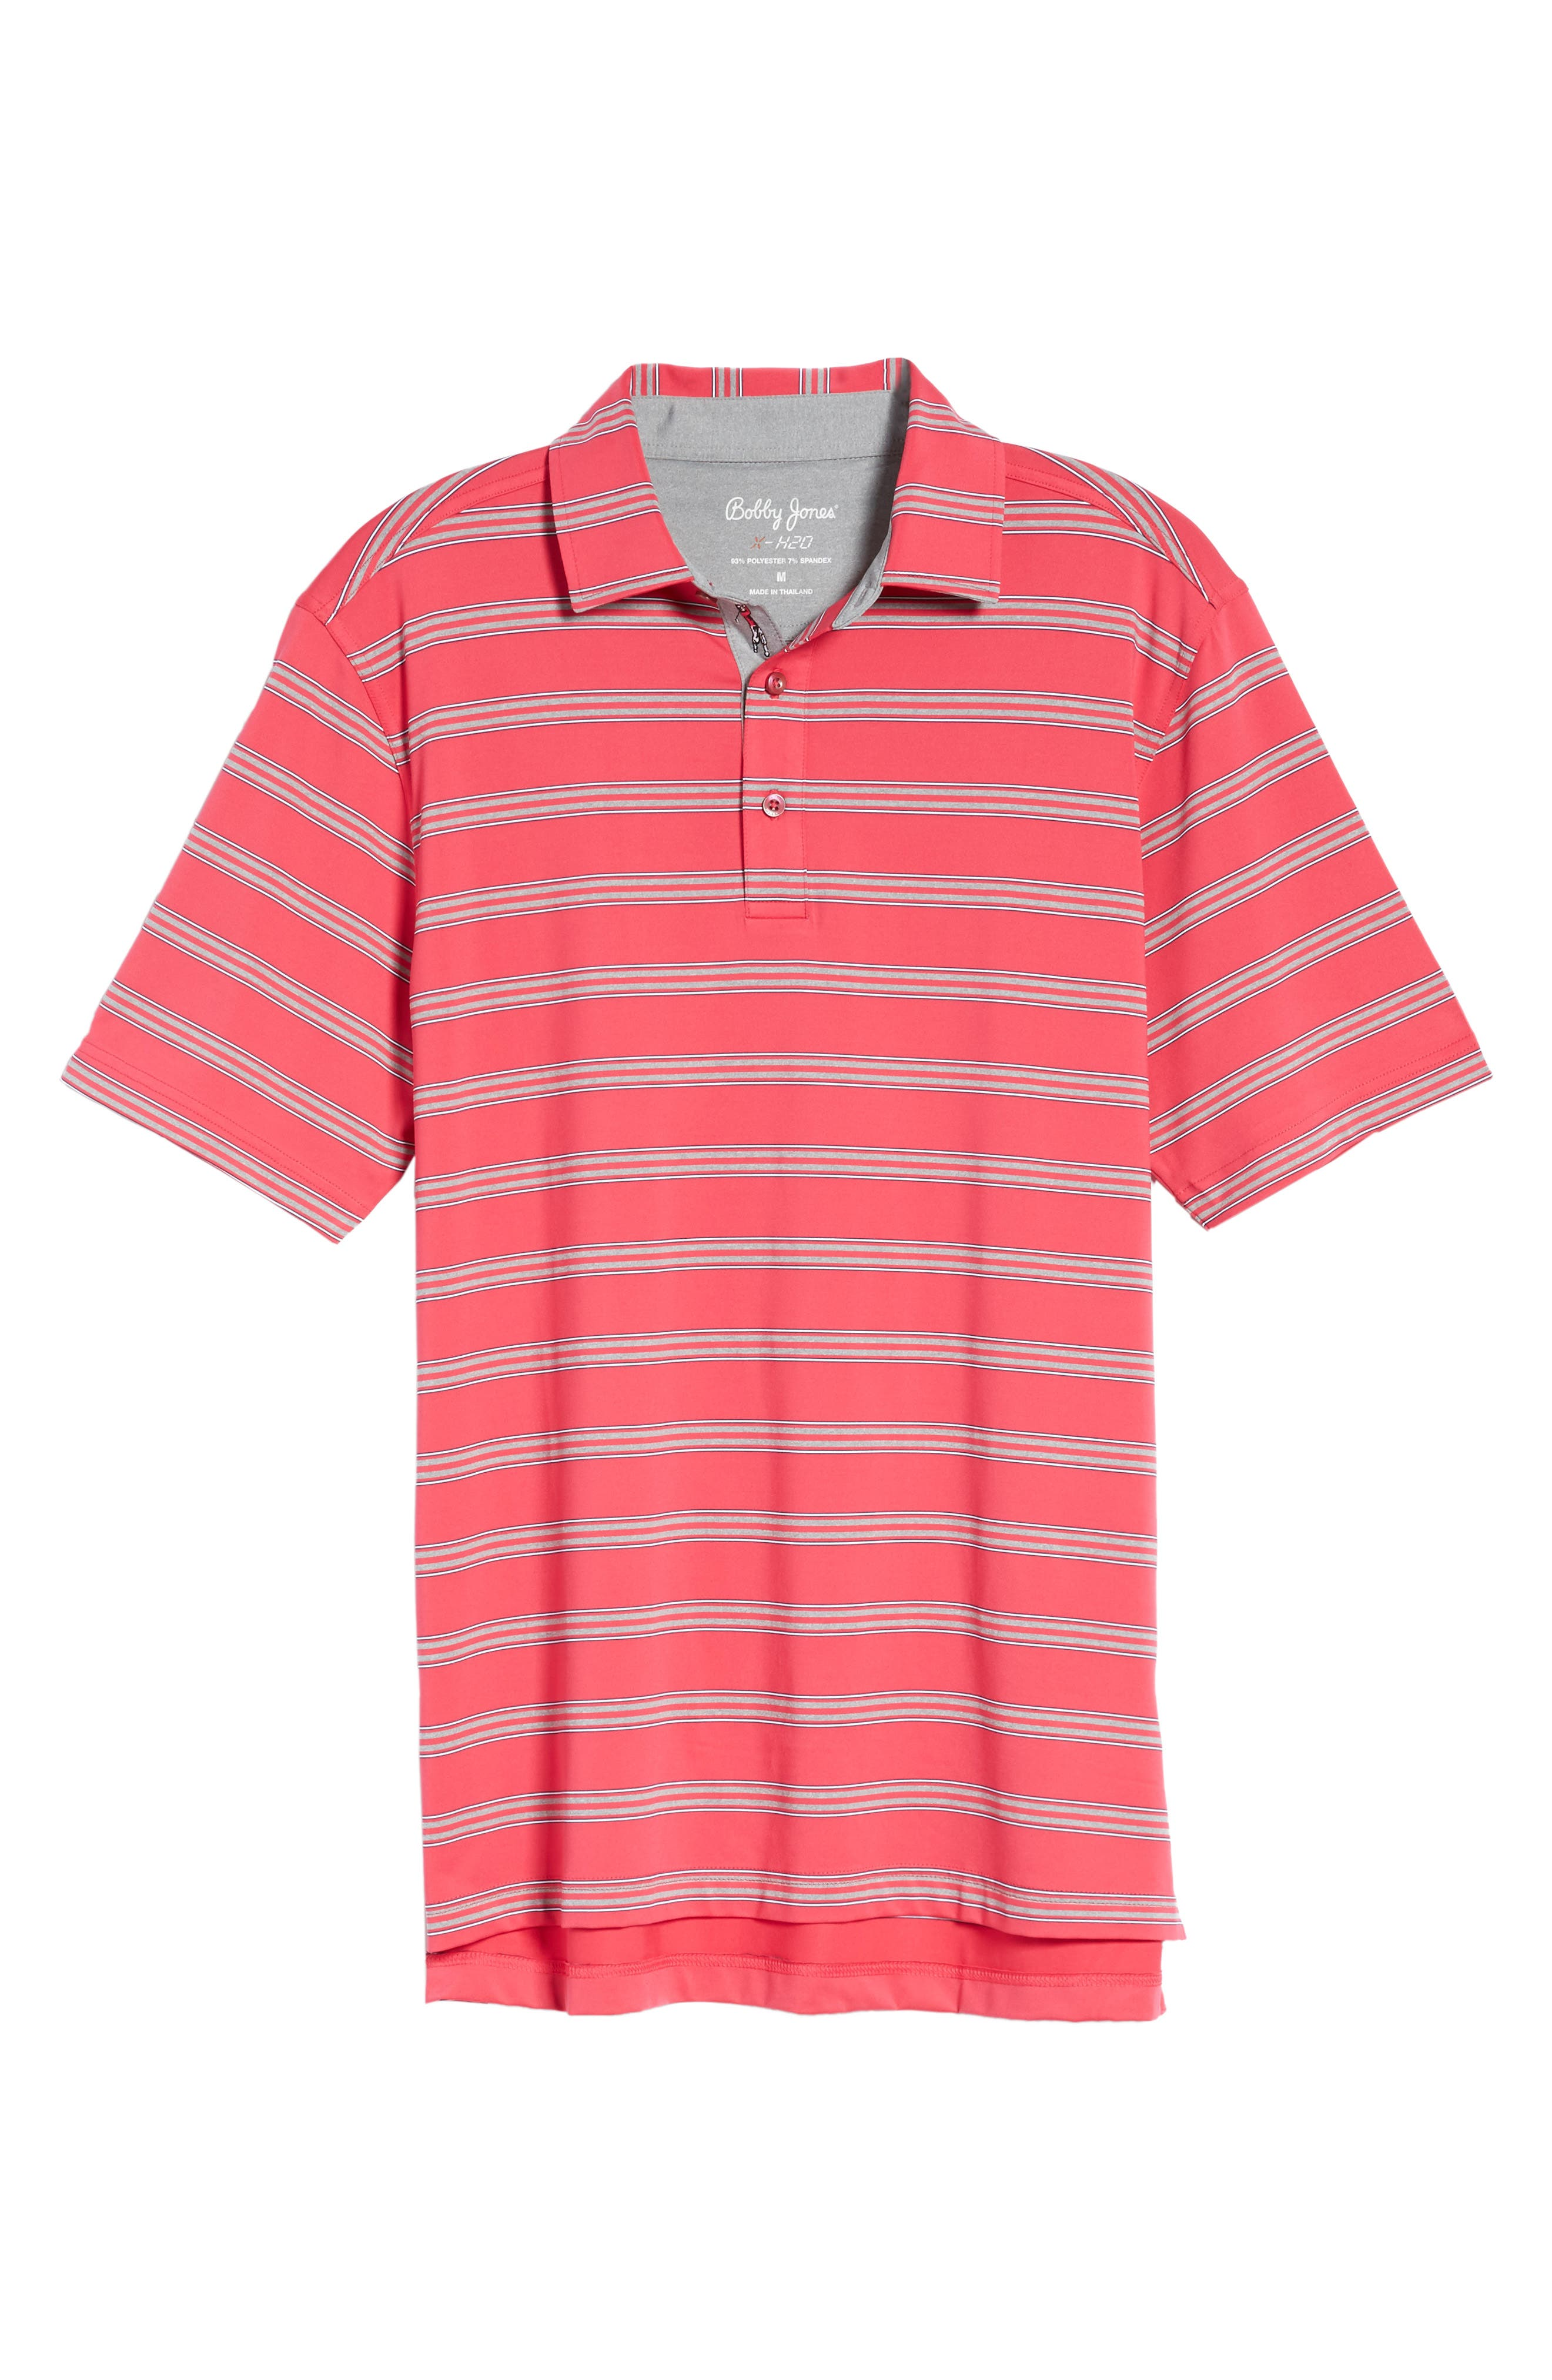 Alternate Image 3  - Bobby Jones XH2O Wren Heather Stripe Polo